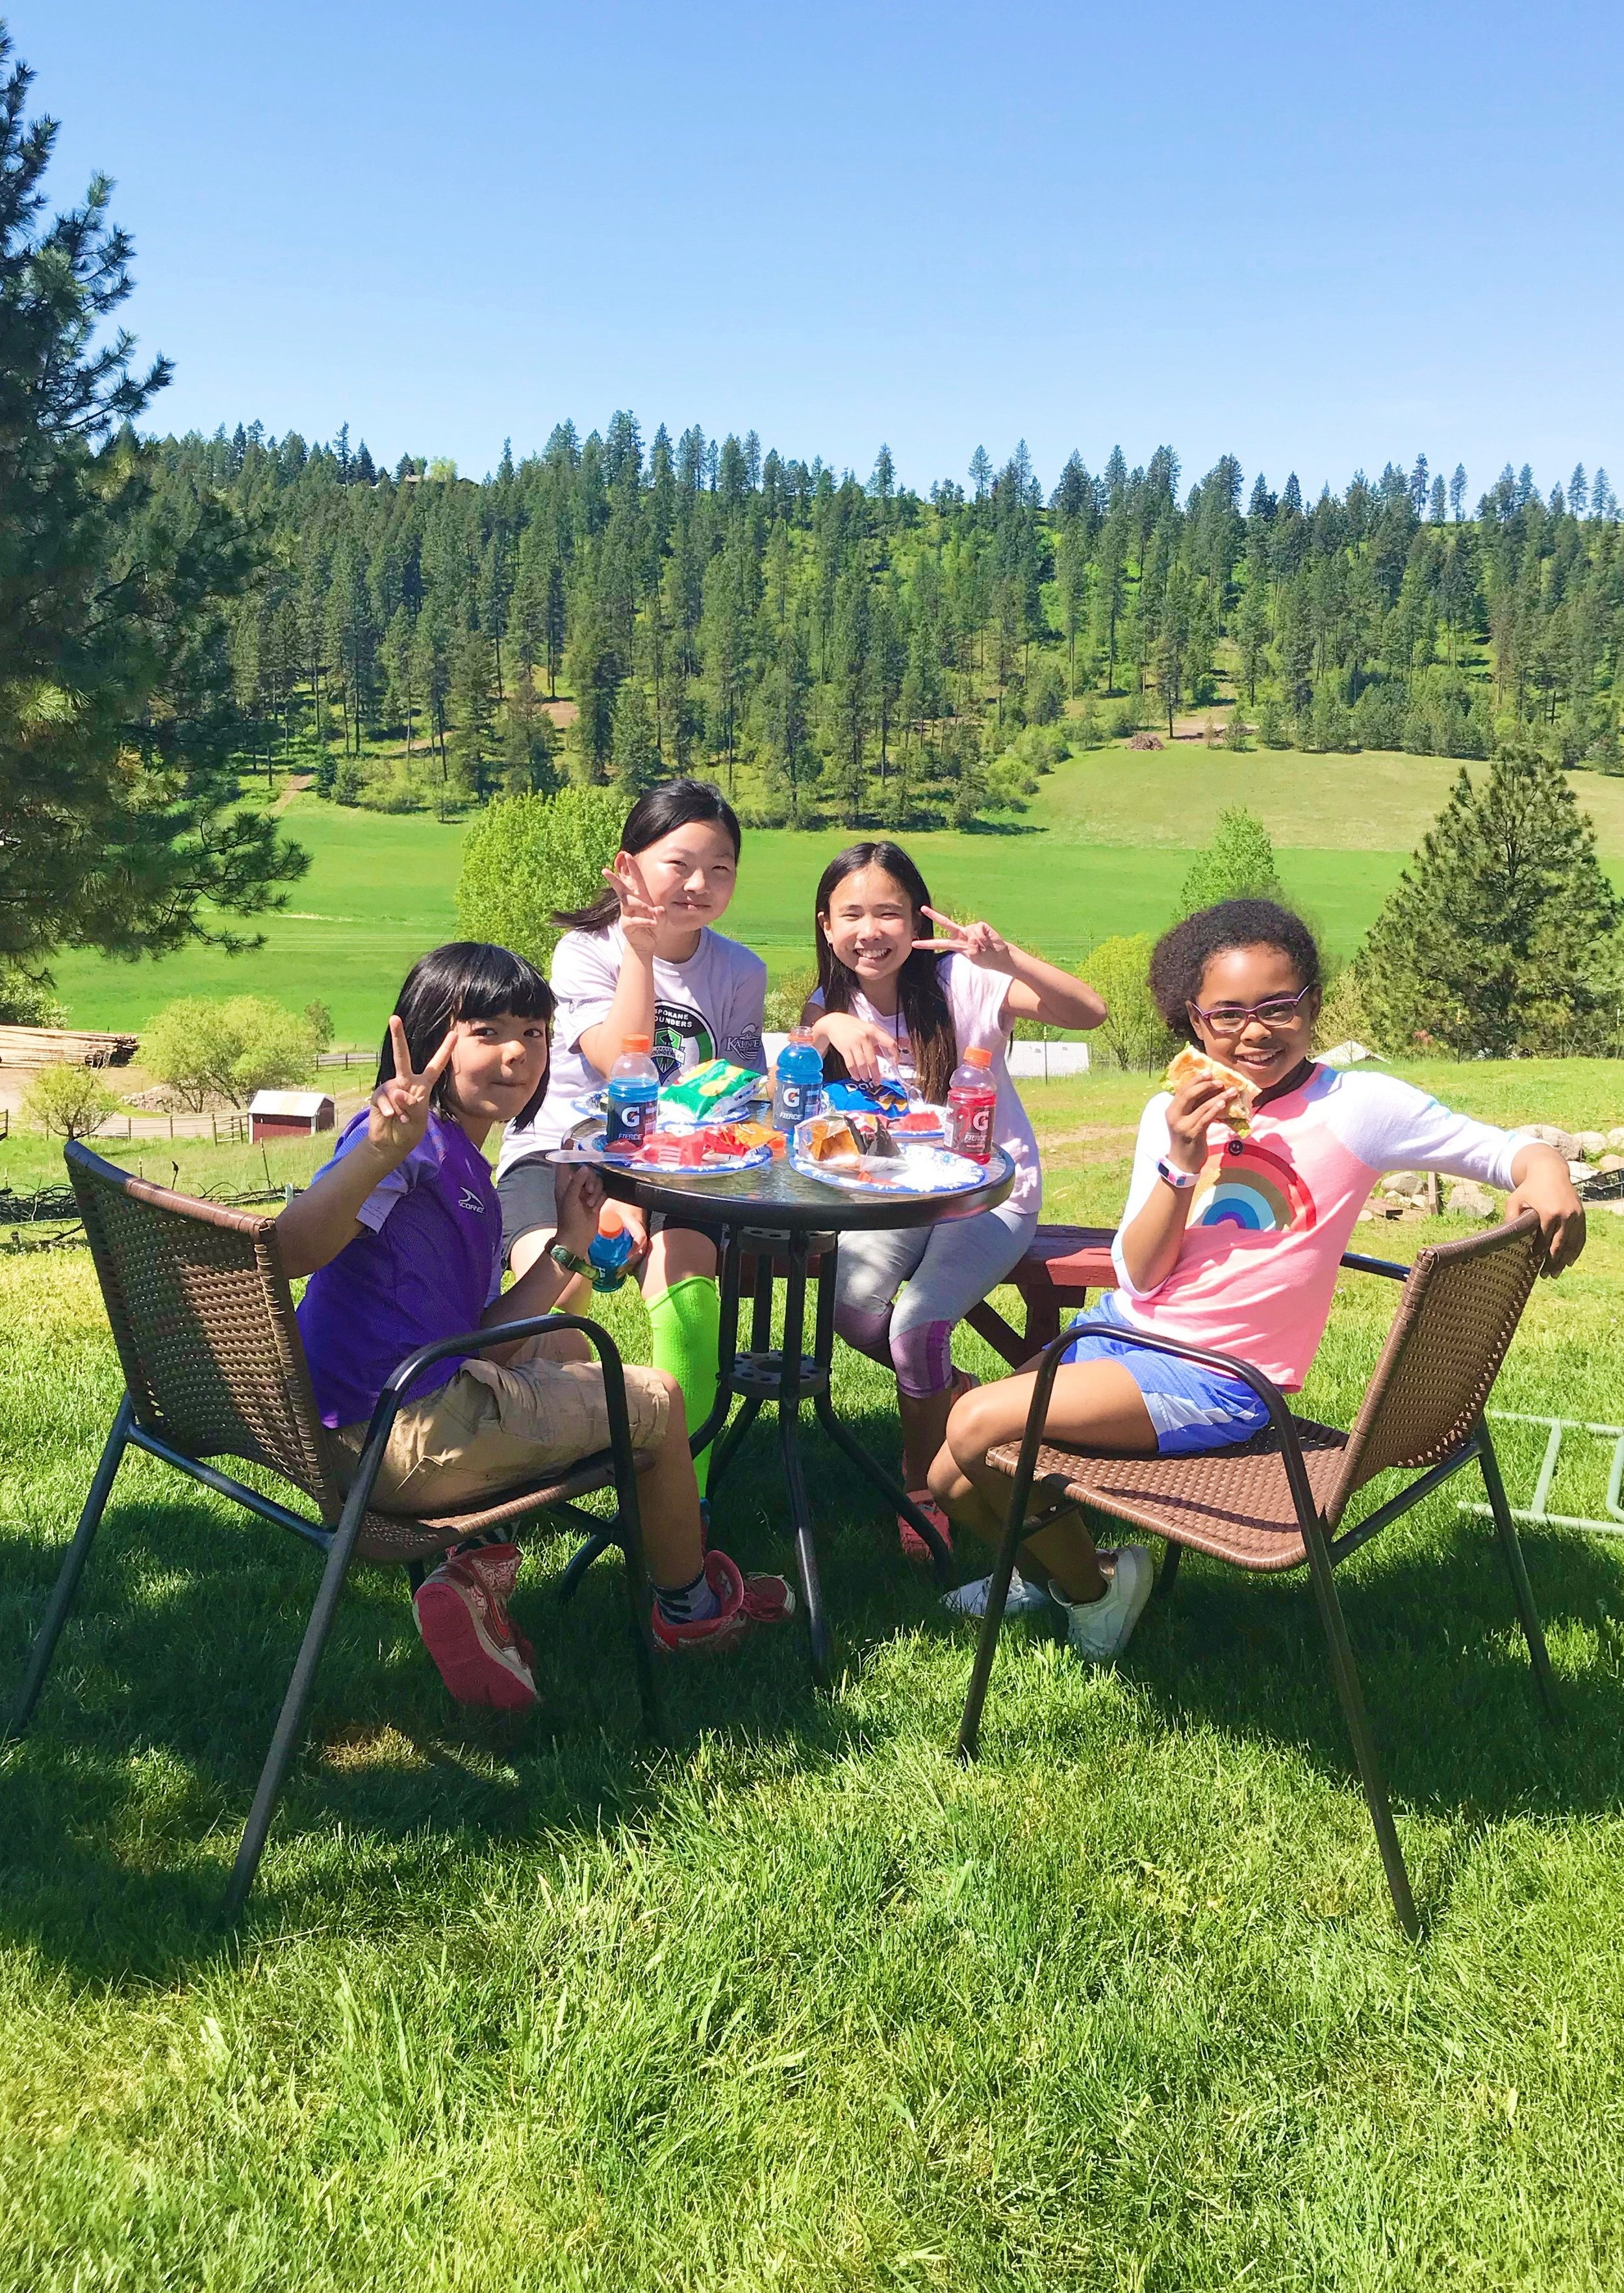 During the school year, Addie and Geoff attend a Korean language and culture school most Saturdays. This was their end of year picnic at her teacher's amazing house/farm.